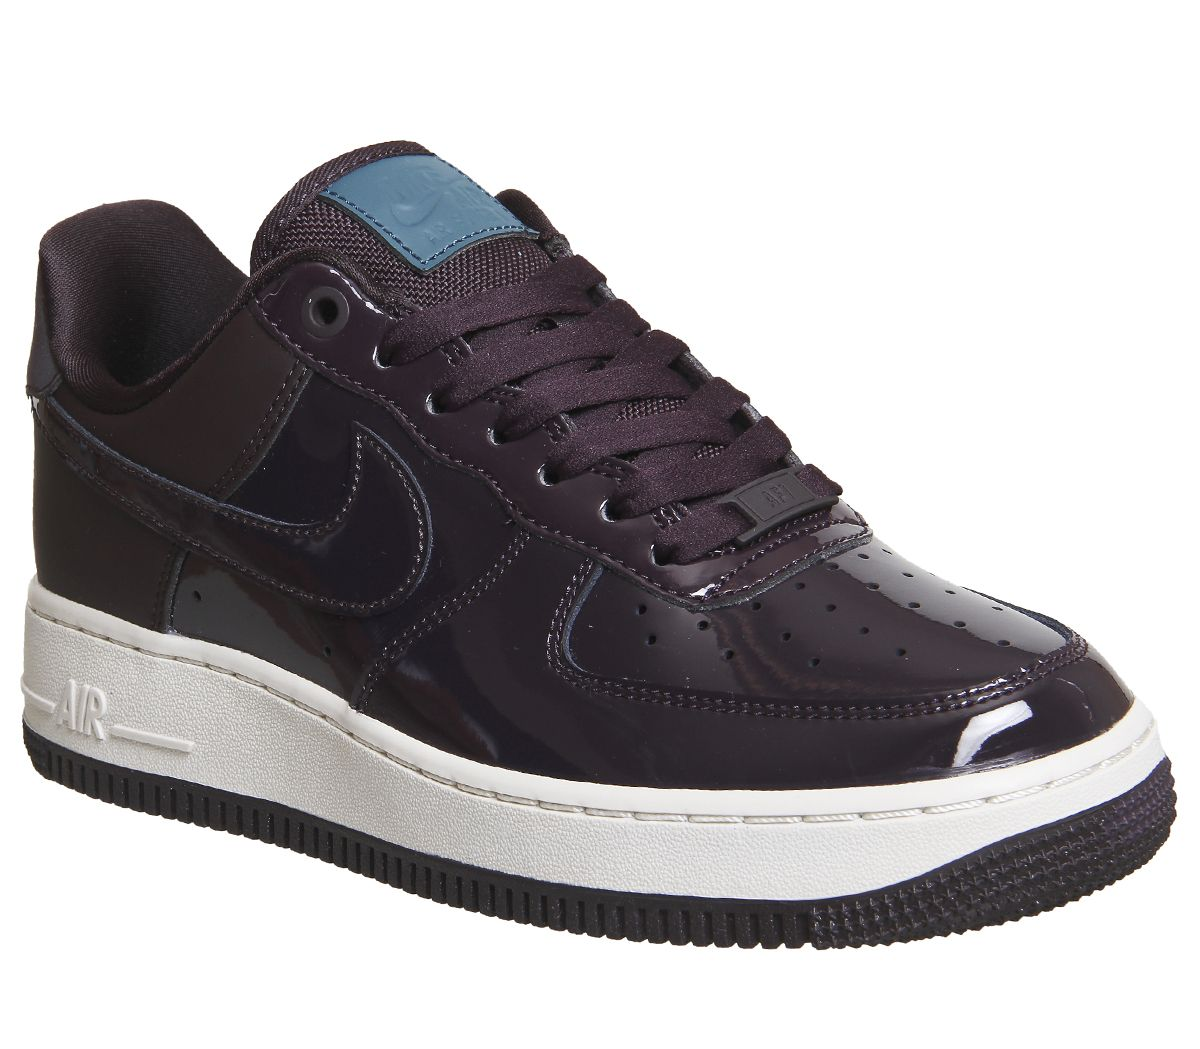 best service 82ff1 649d2 Nike Air Force 1  07 Premium Port Wine Space Blue - Hers trainers